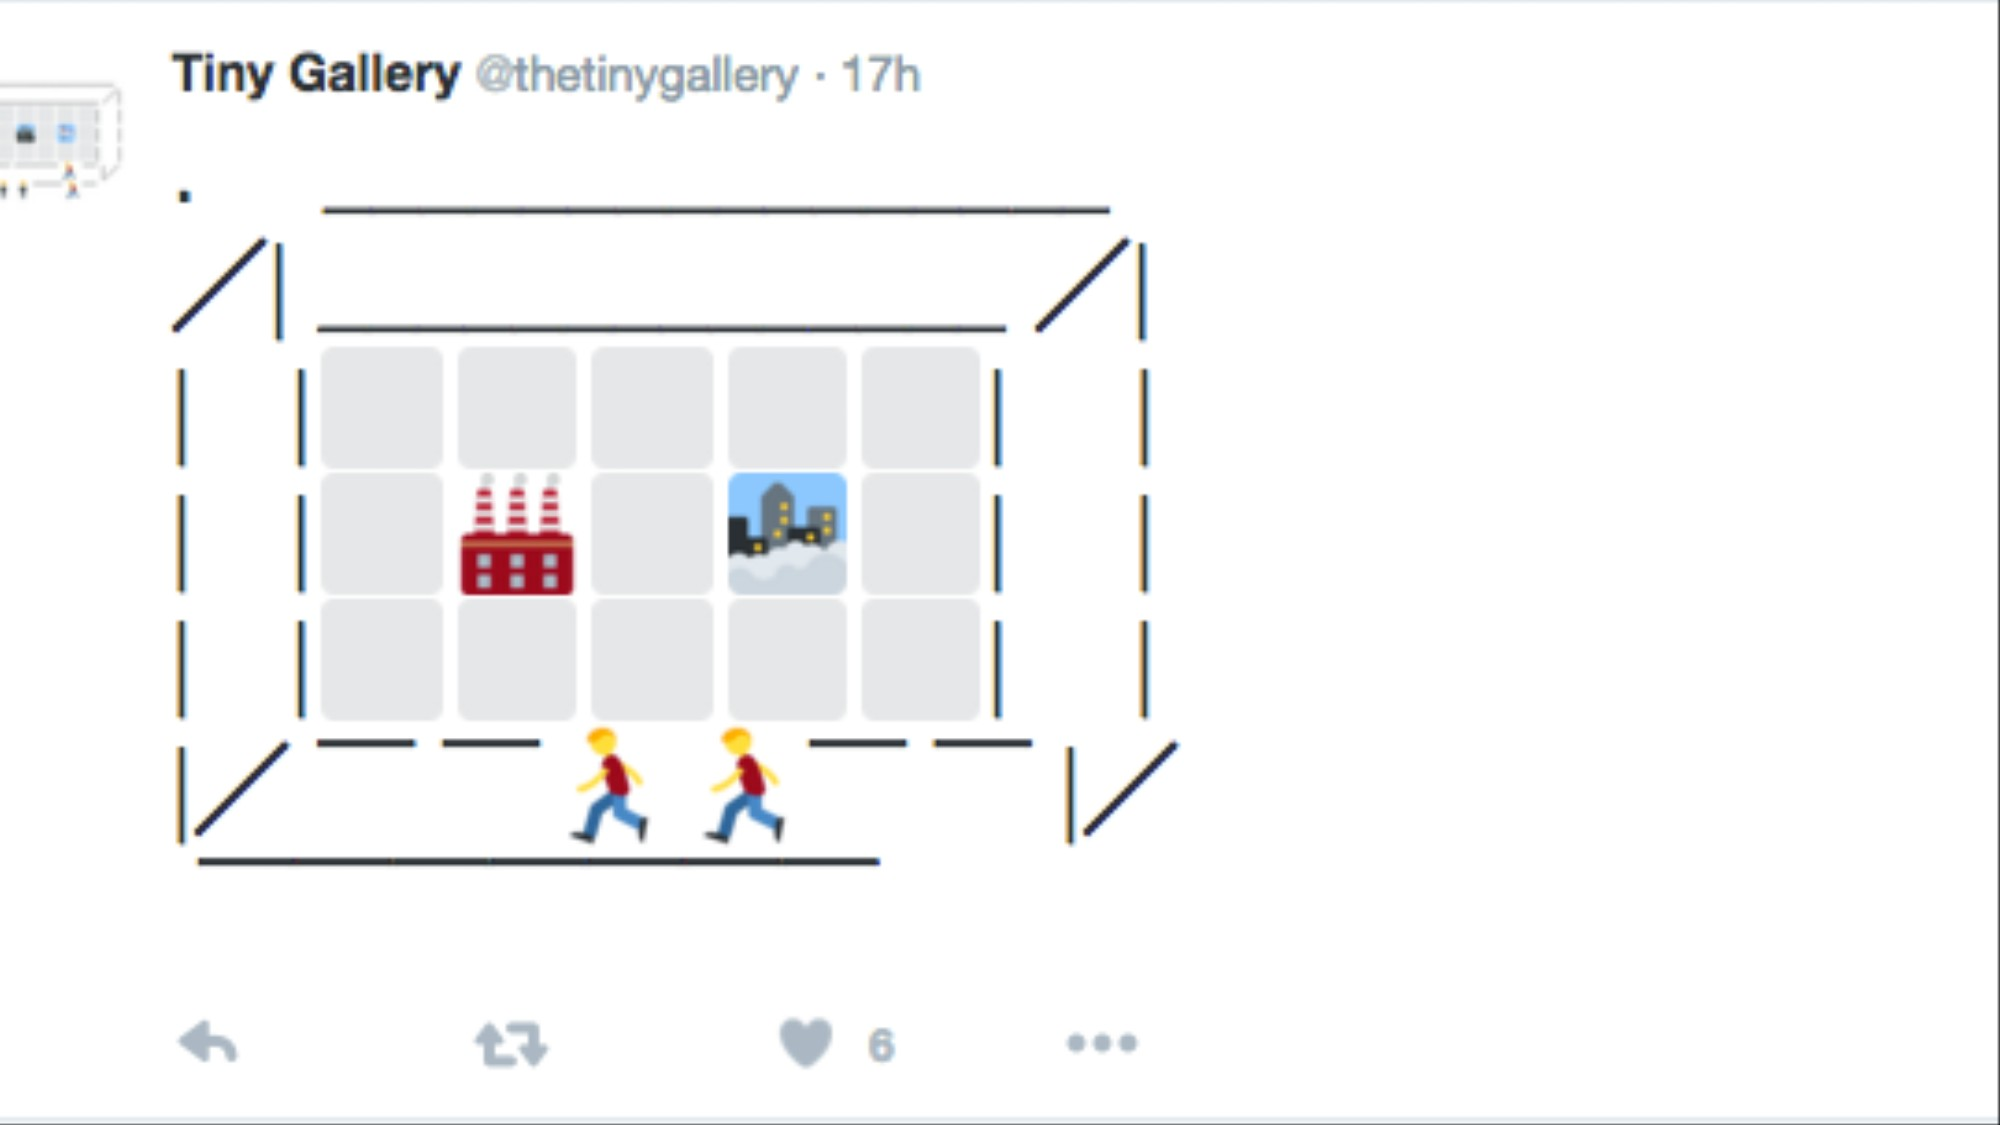 Emojis Are Art in This Twitter Bot ASCII Gallery - VICE